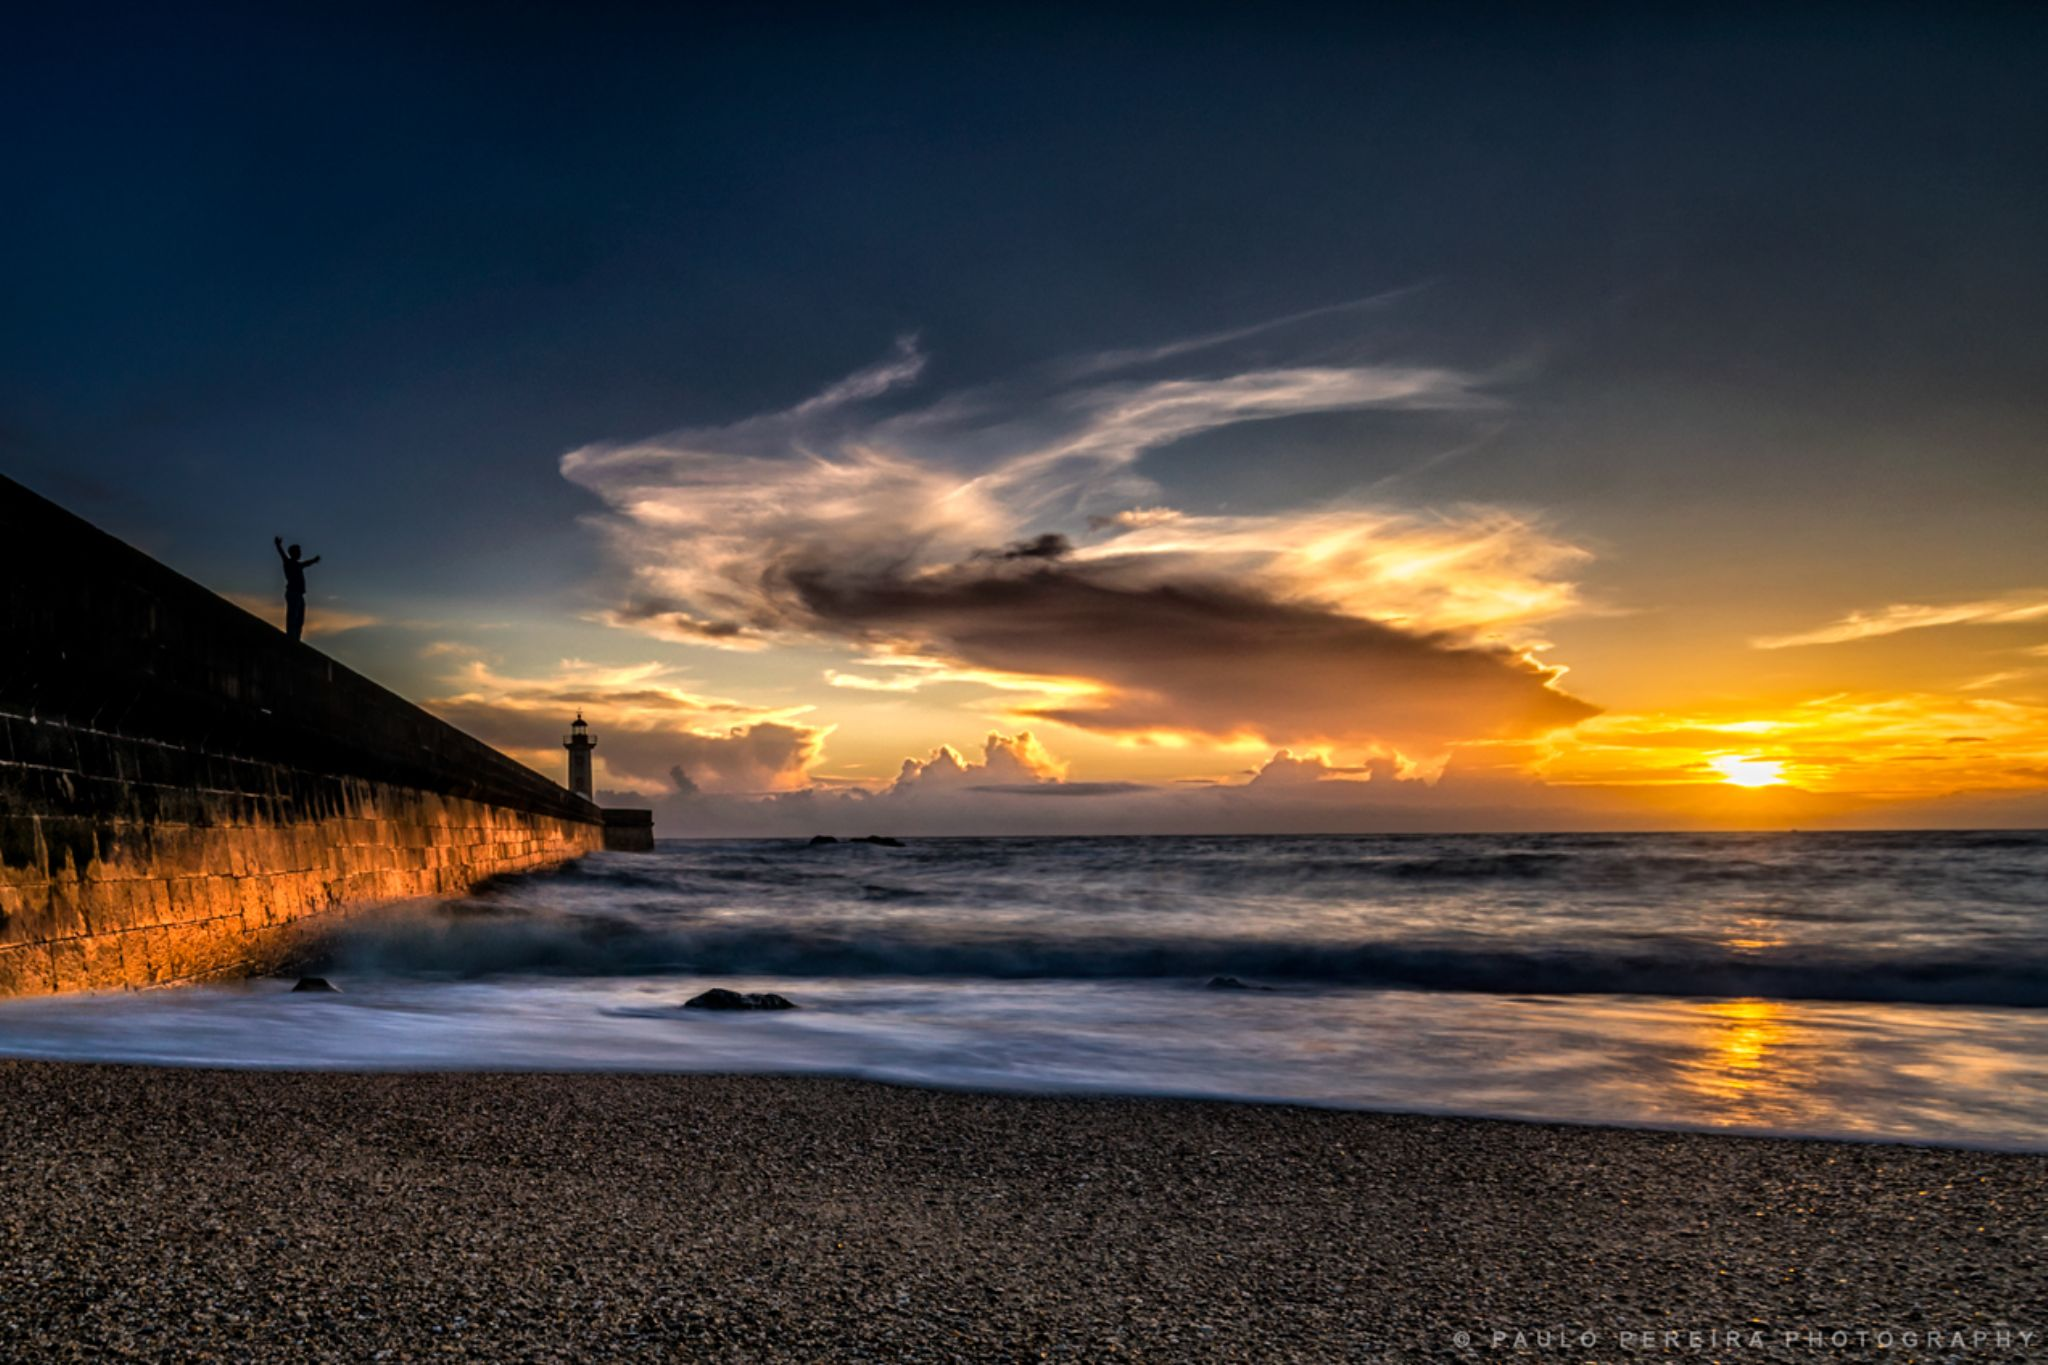 TRILOGY, The Man, the Lighthouse and the Sun by Paulo Pereira Photography